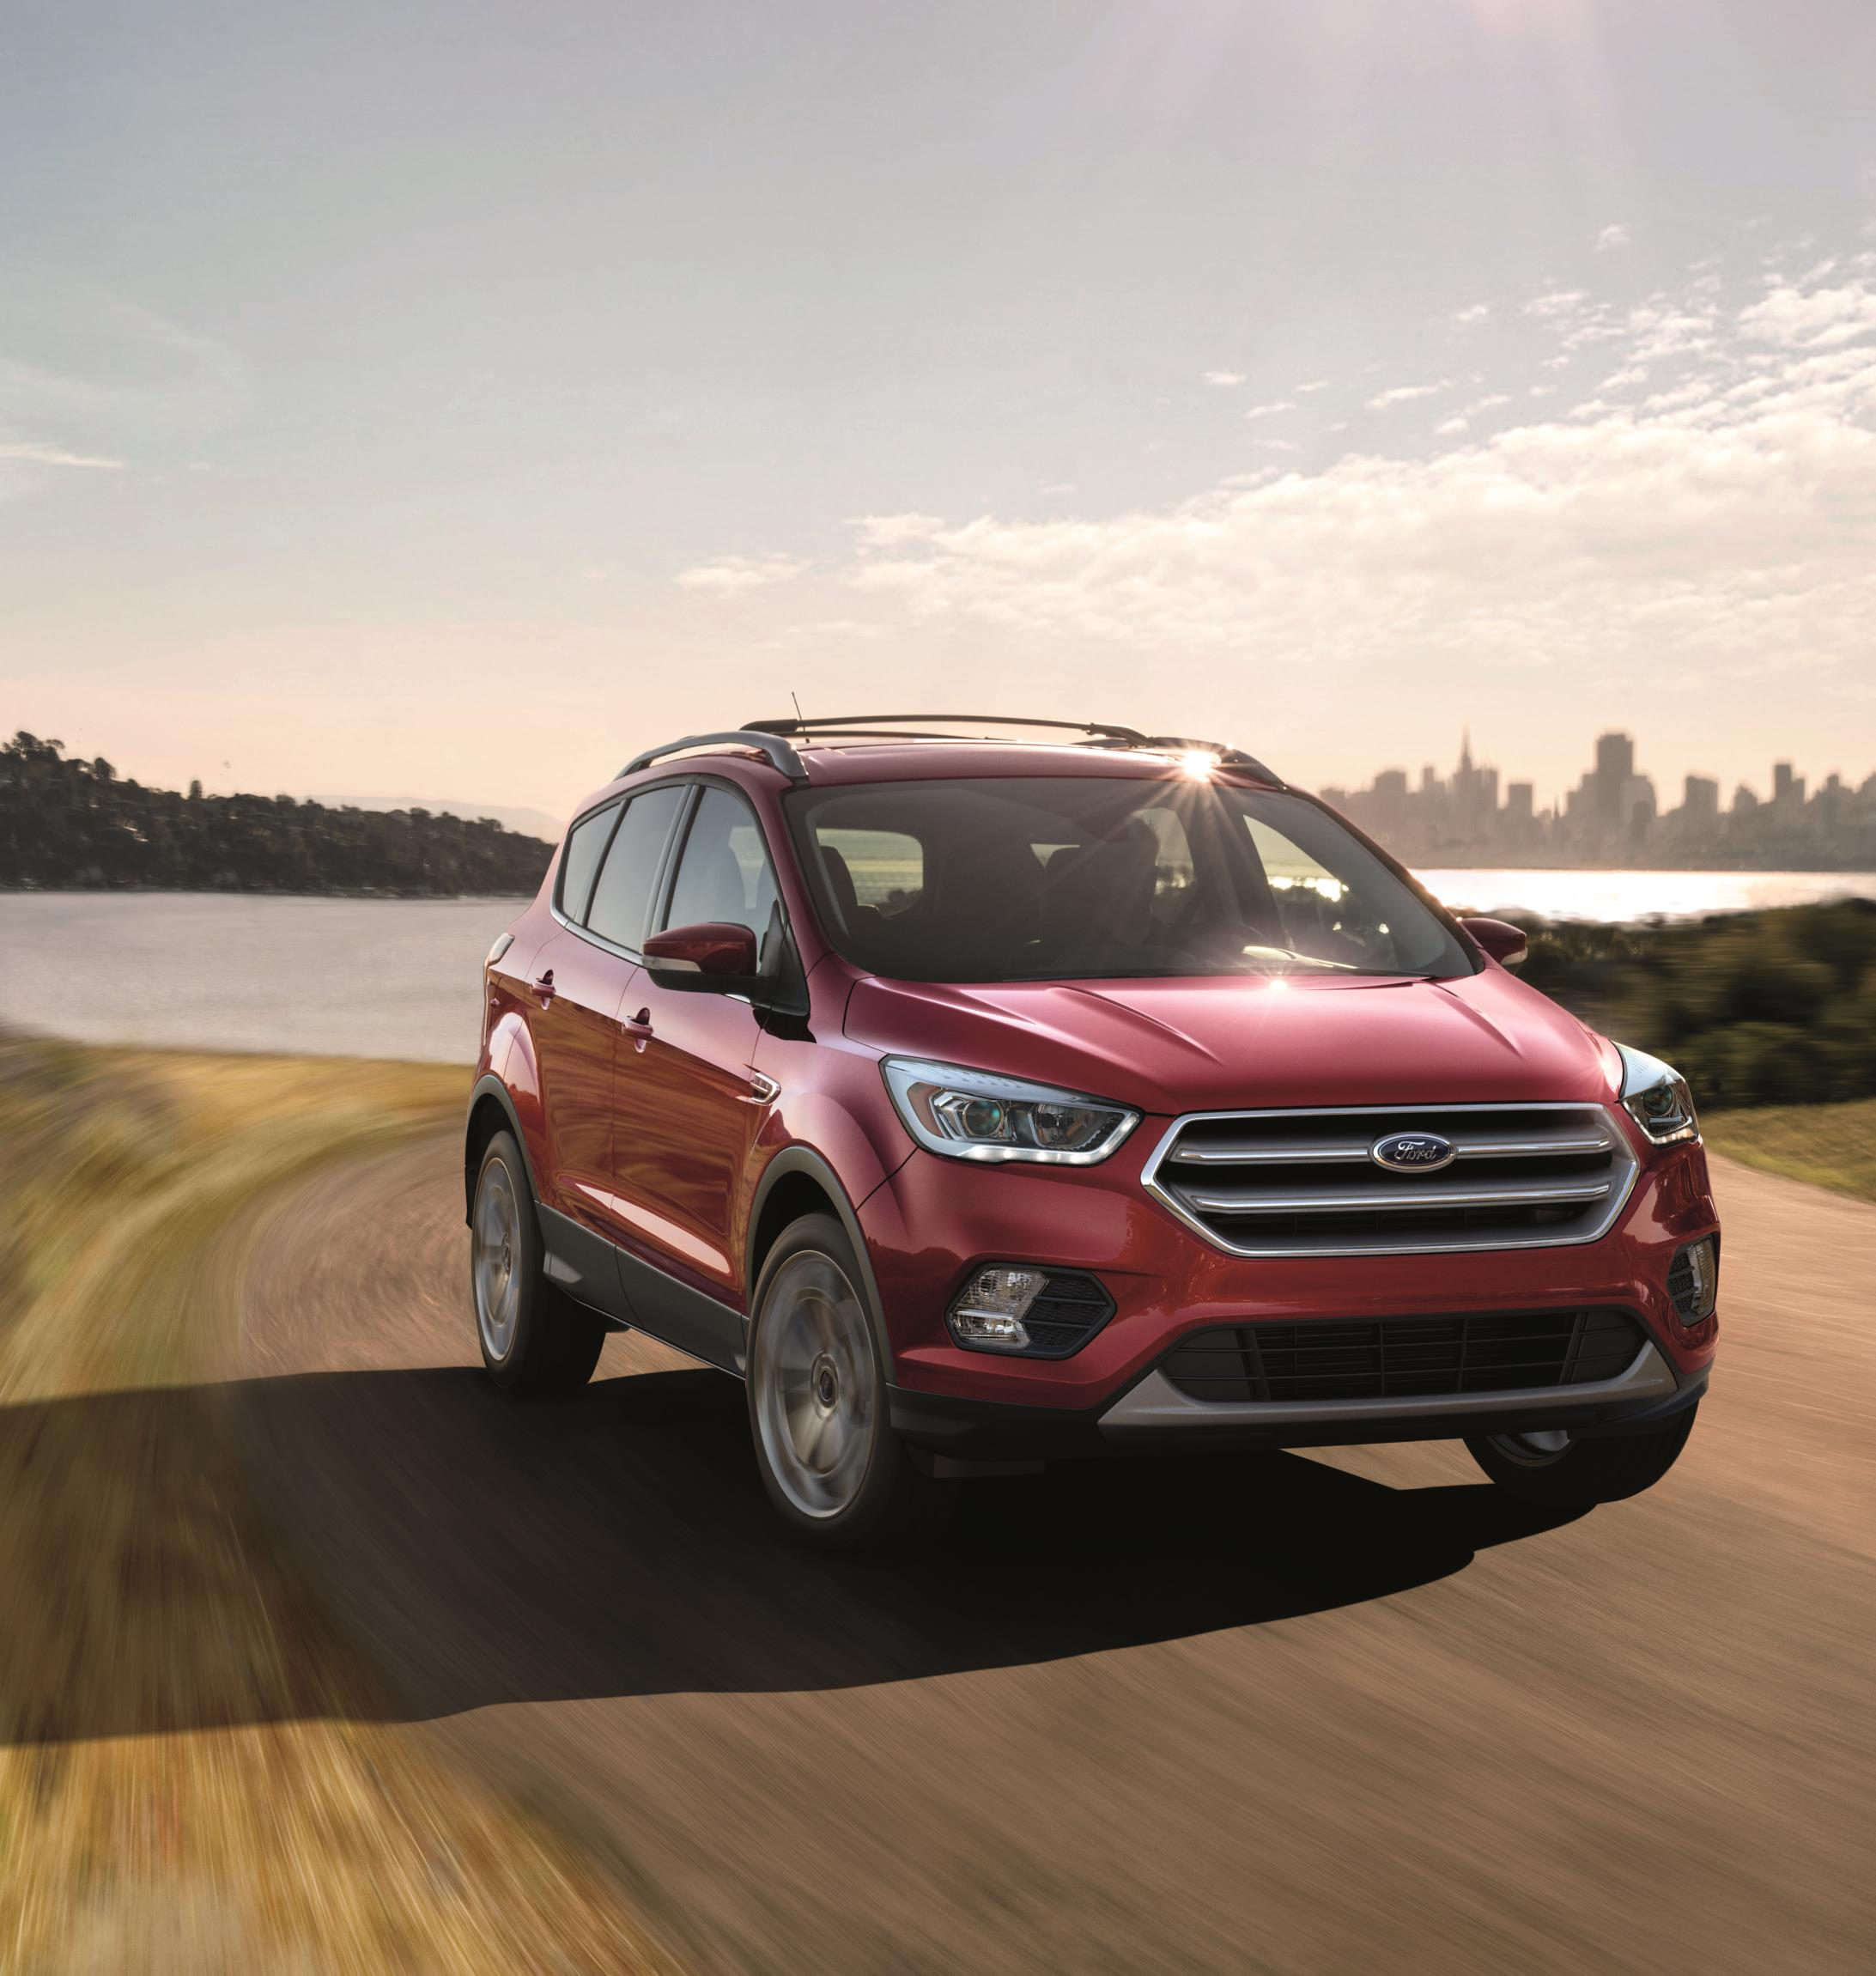 The Ford Escape, one of Ford's top selling vehicles in 2017